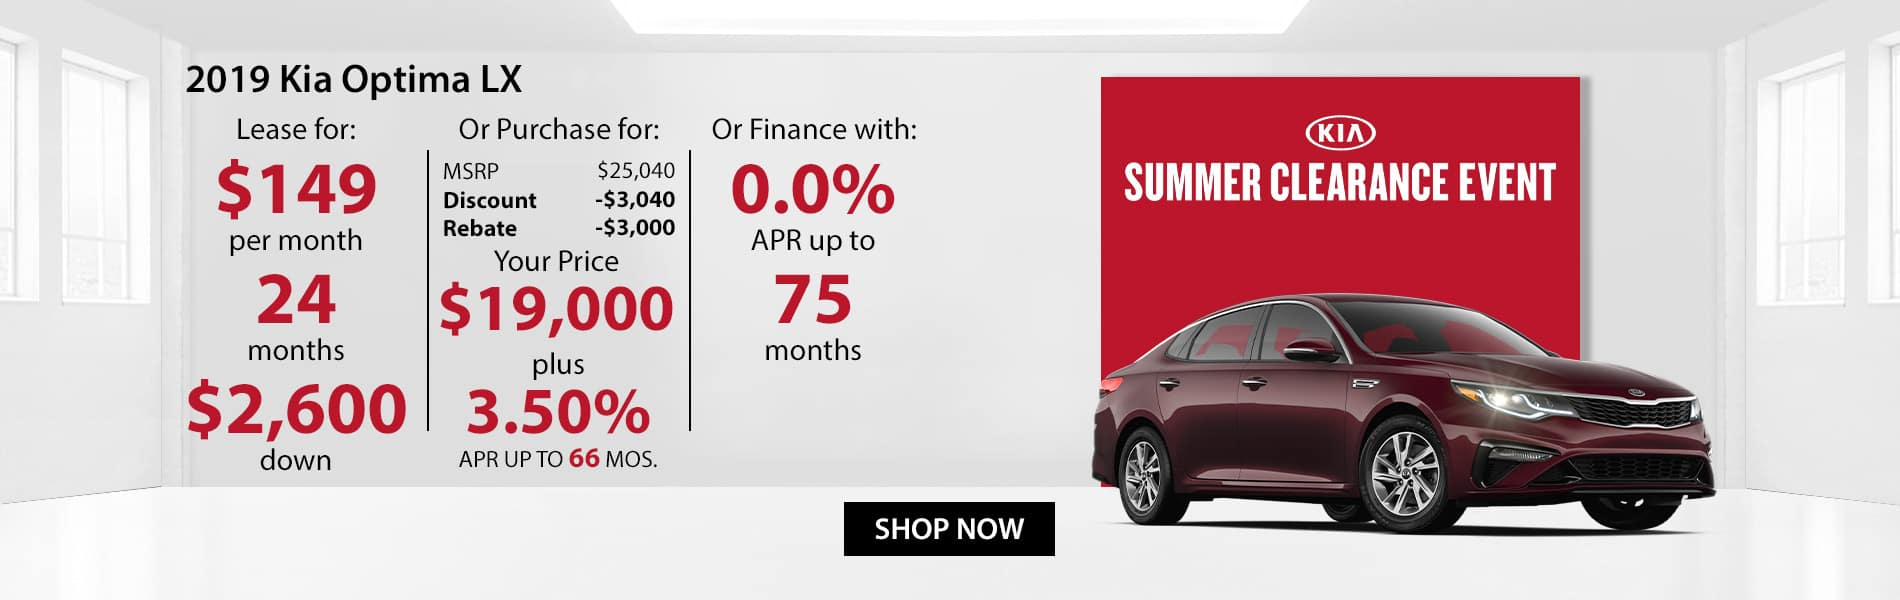 Special offer on 2019 Kia Optima LX Lease for $149 or Purchase for $19,000 with 3.5% APR or get 0% APR for 75 months.